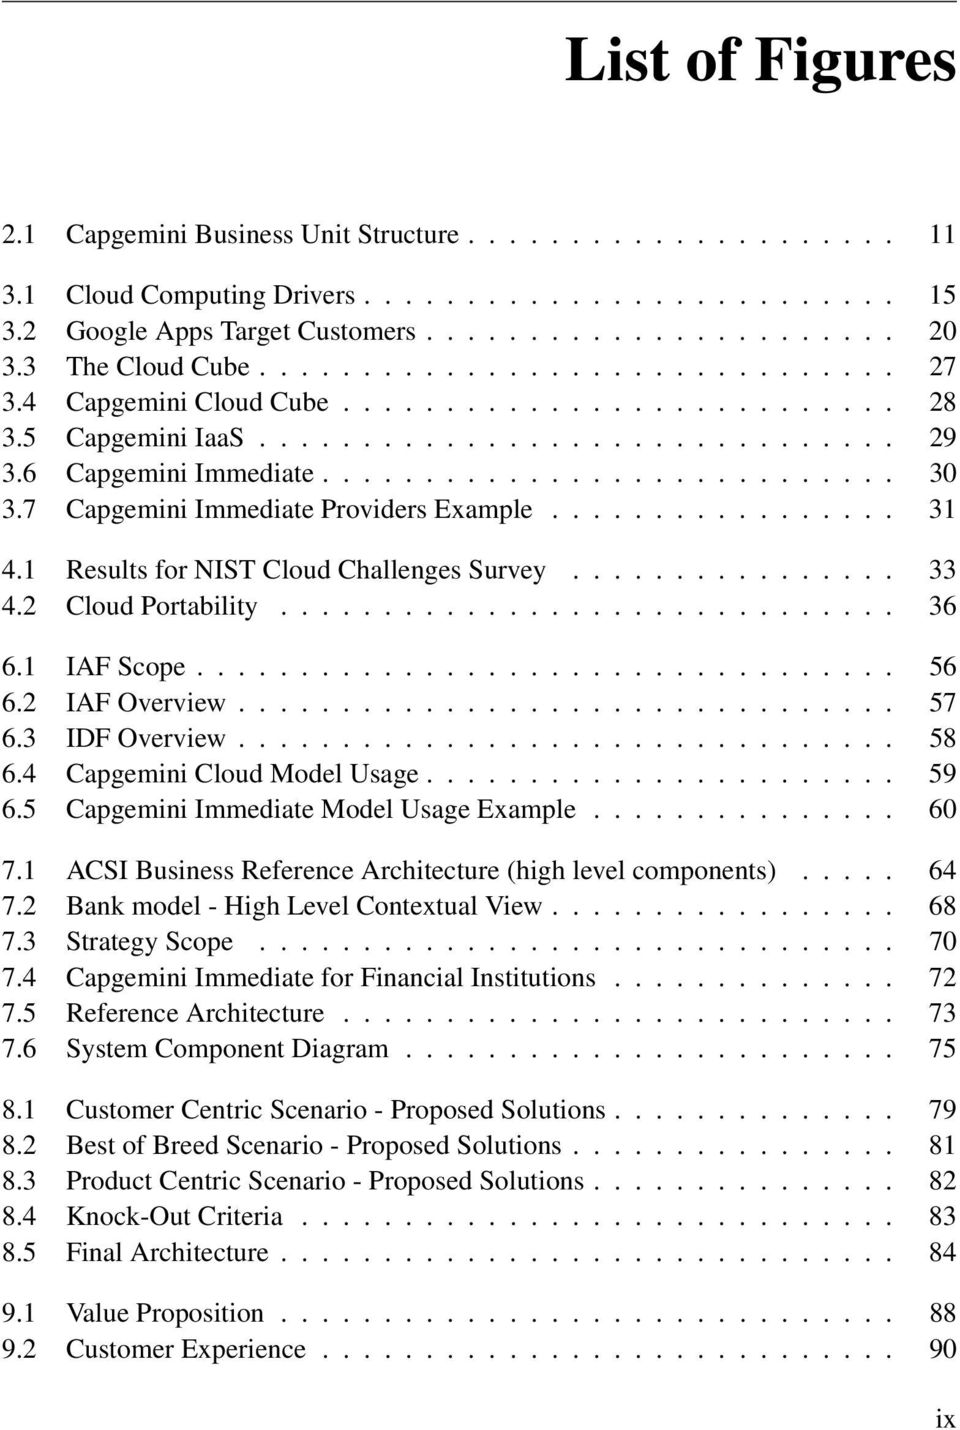 7 Capgemini Immediate Providers Example................. 31 4.1 Results for NIST Cloud Challenges Survey................ 33 4.2 Cloud Portability.............................. 36 6.1 IAF Scope.................................. 56 6.